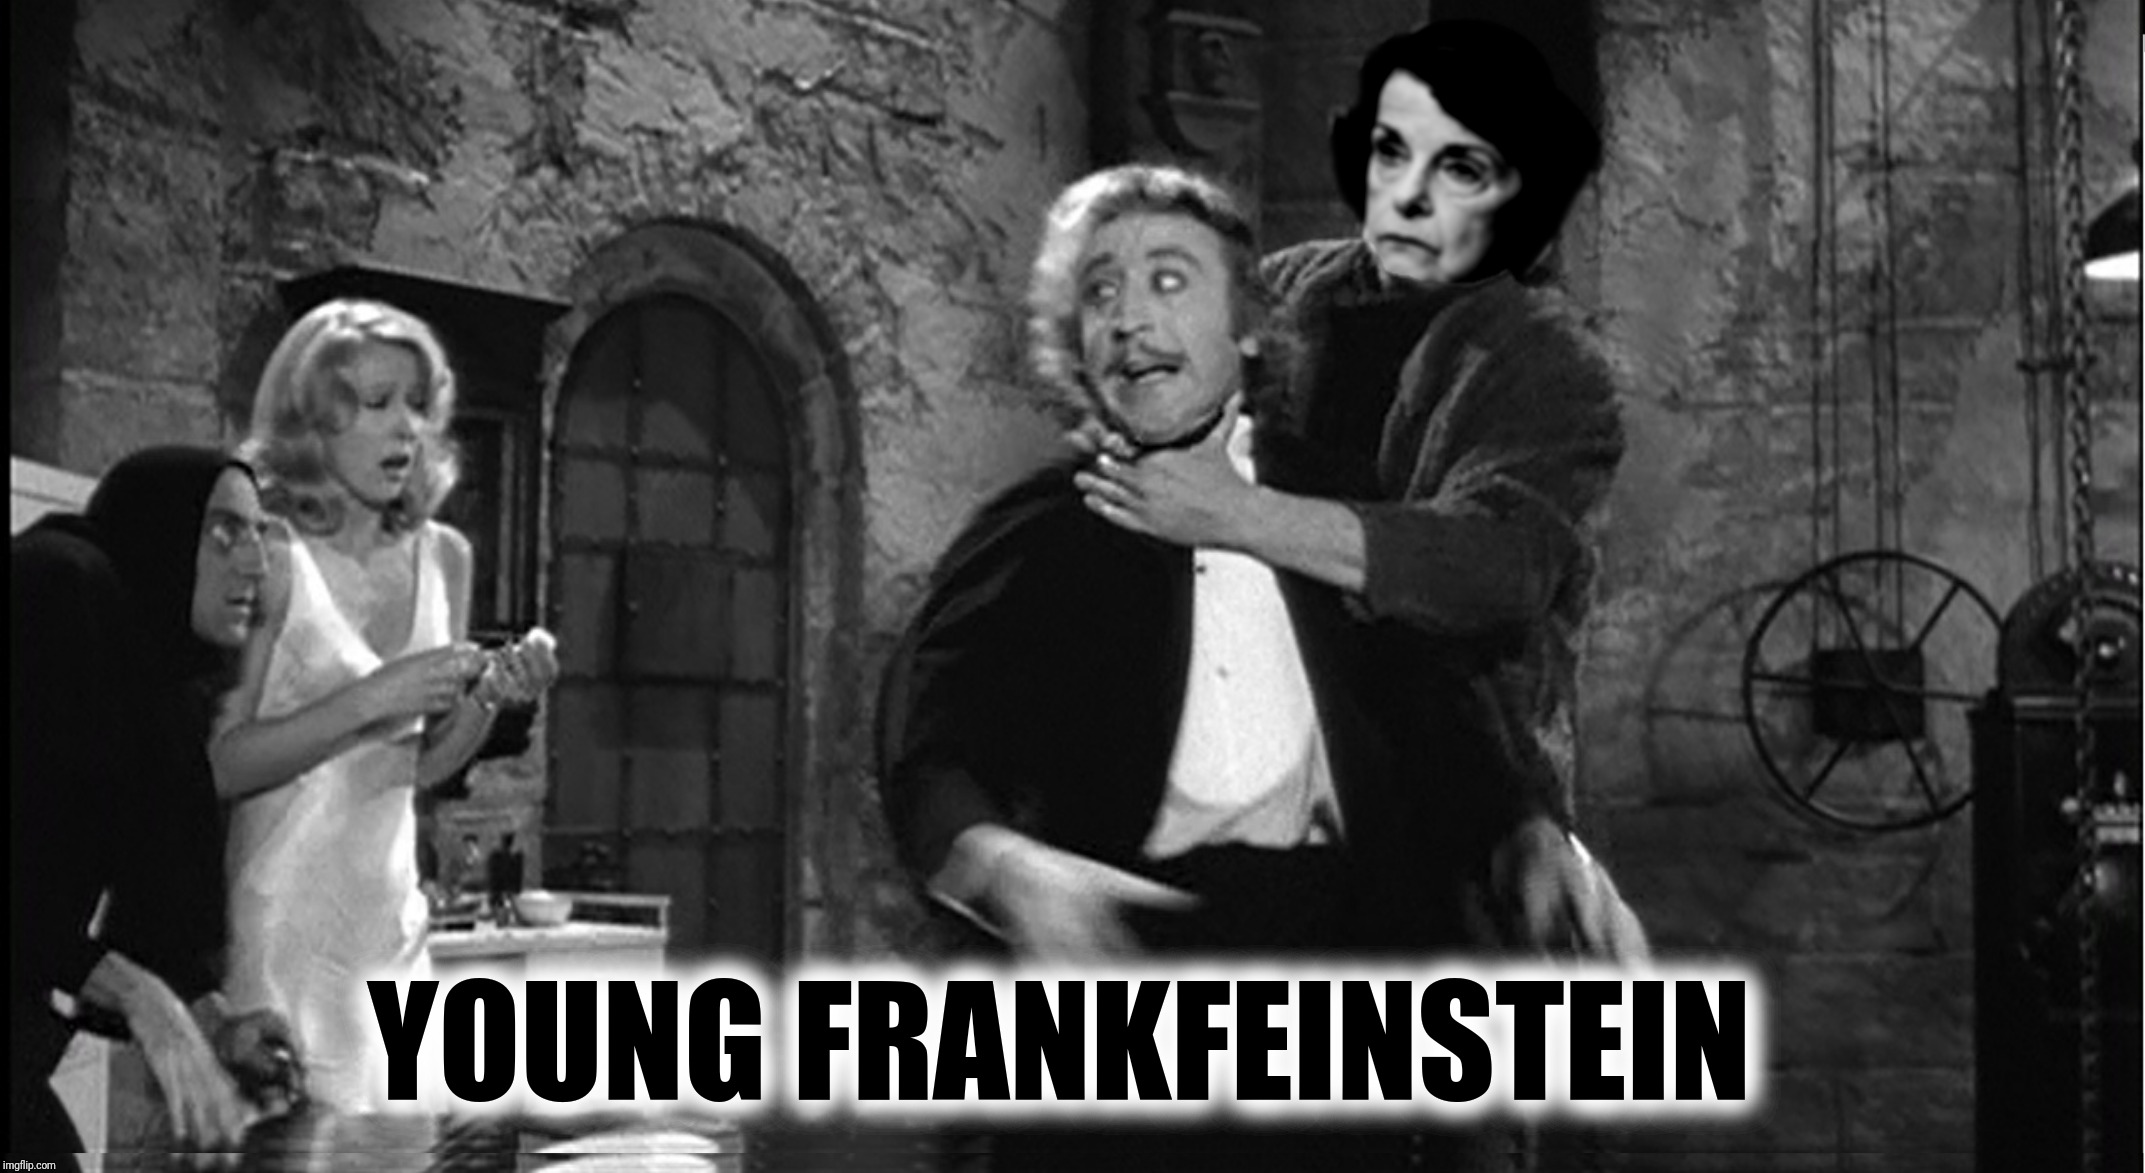 Bad Photoshop Sunday present:  That's FronkFeinsteen! | YOUNG FRANKFEINSTEIN | image tagged in bad photoshop sunday,young frankenstein,dianne feinstein | made w/ Imgflip meme maker